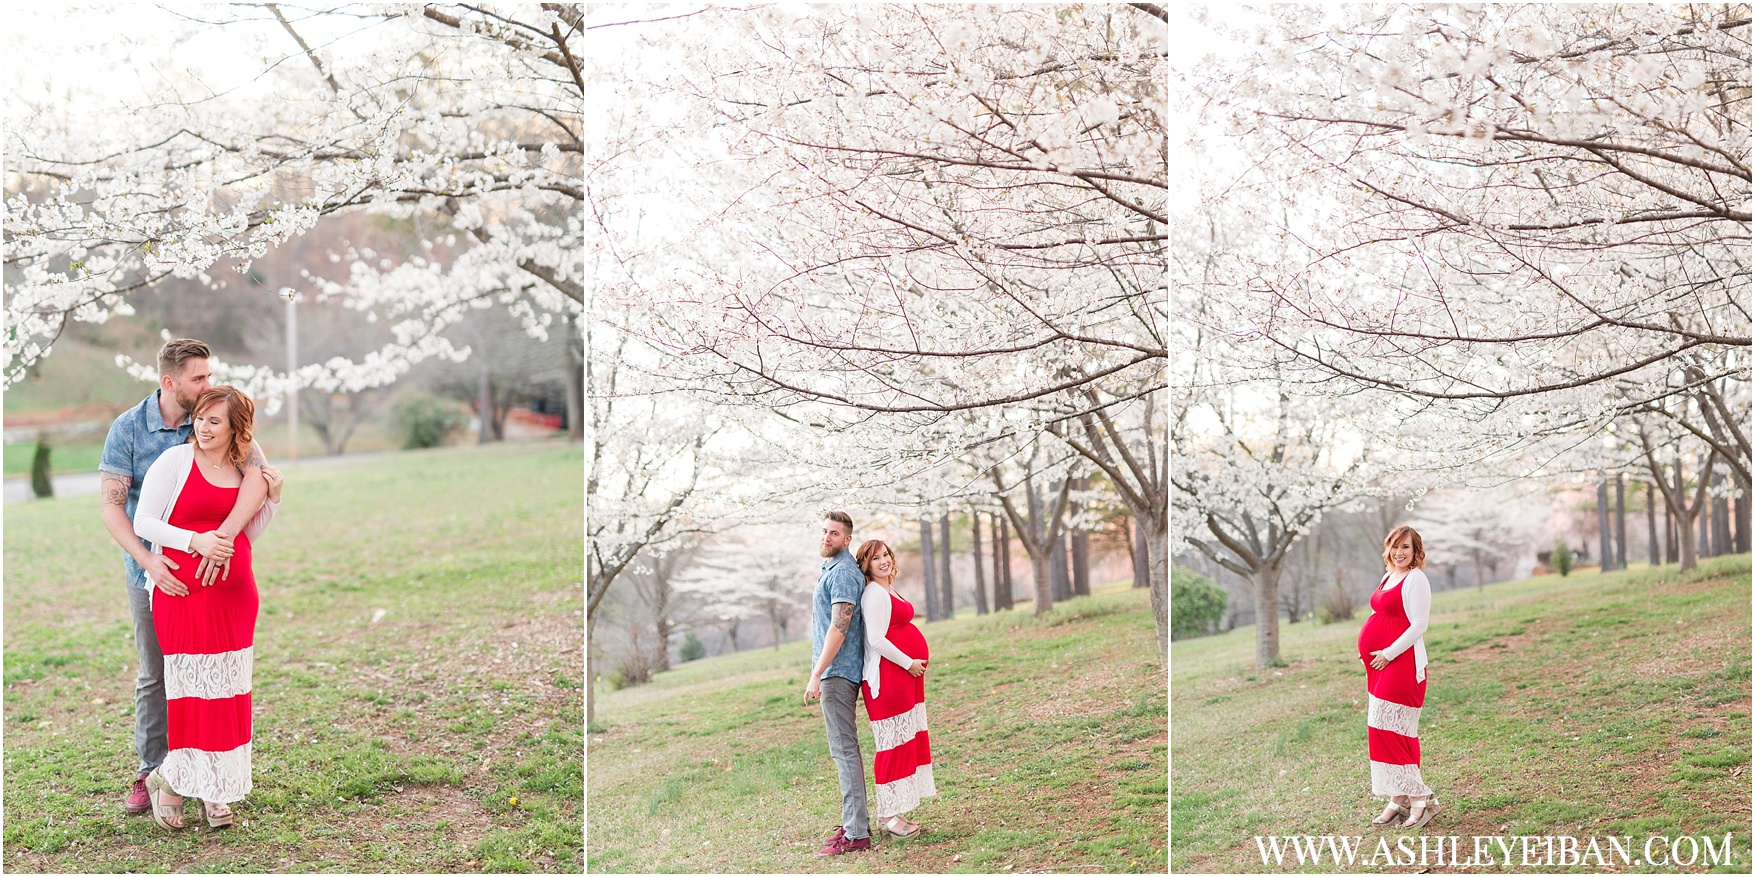 Lynchburg, Virginia Photographer || Lynchburg Wedding Photographer || Ashley Eiban Photography || www.ashleyeiban.com